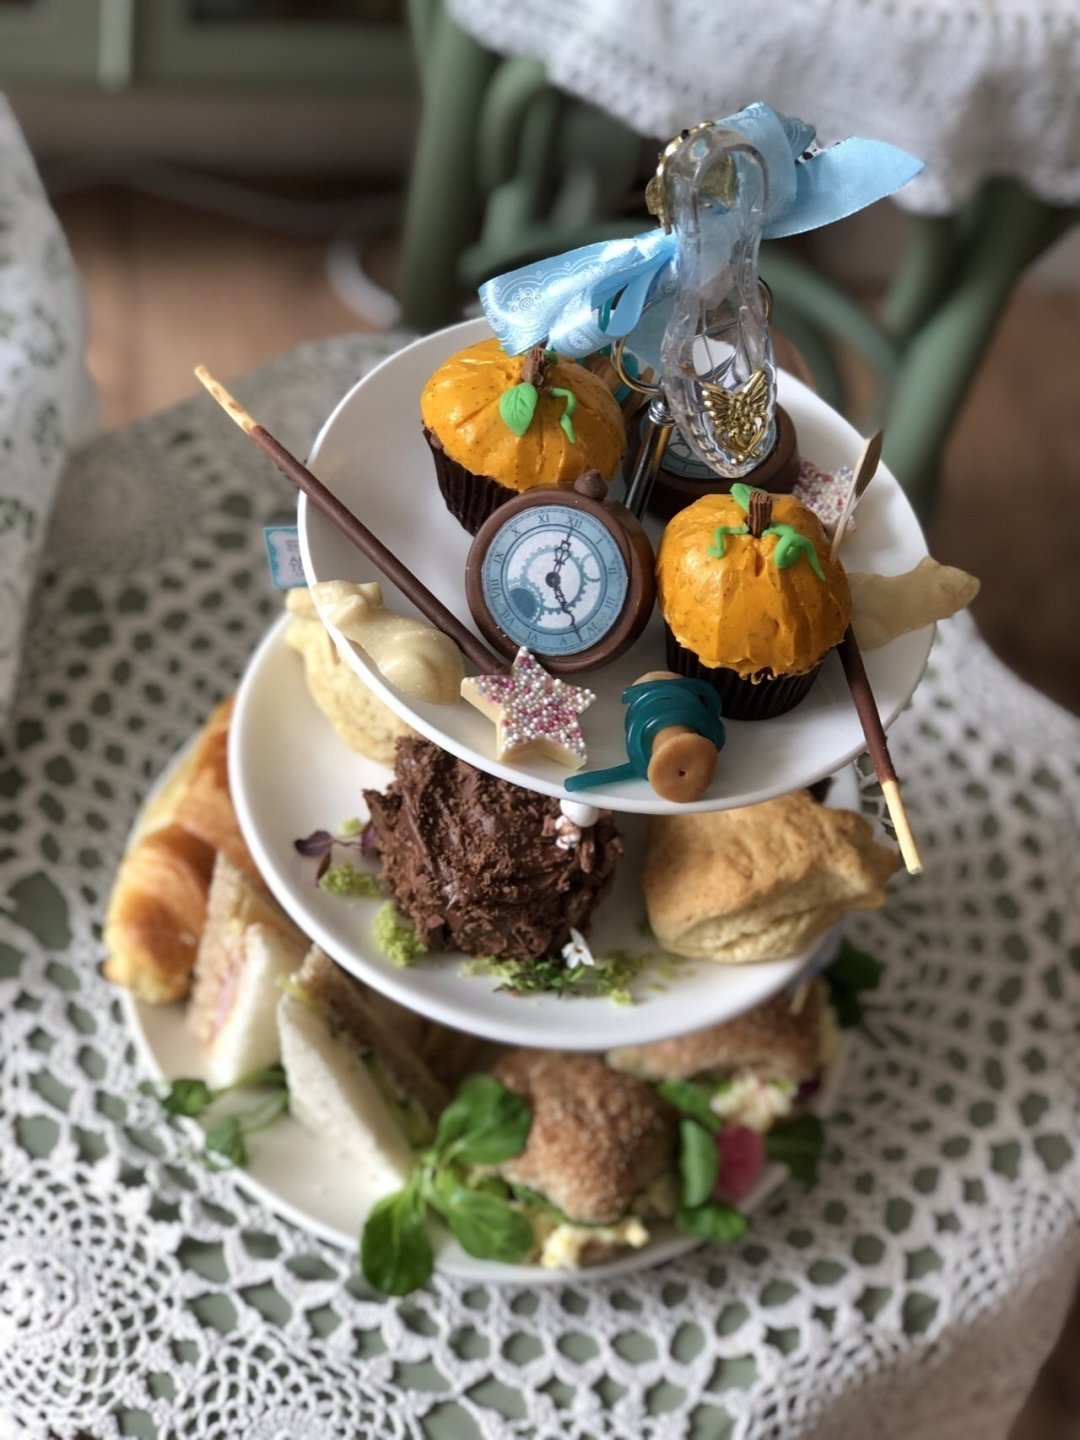 Top view of cake stand Cinderella Afternoon Tea. Glass slipper, pumpkin muffins